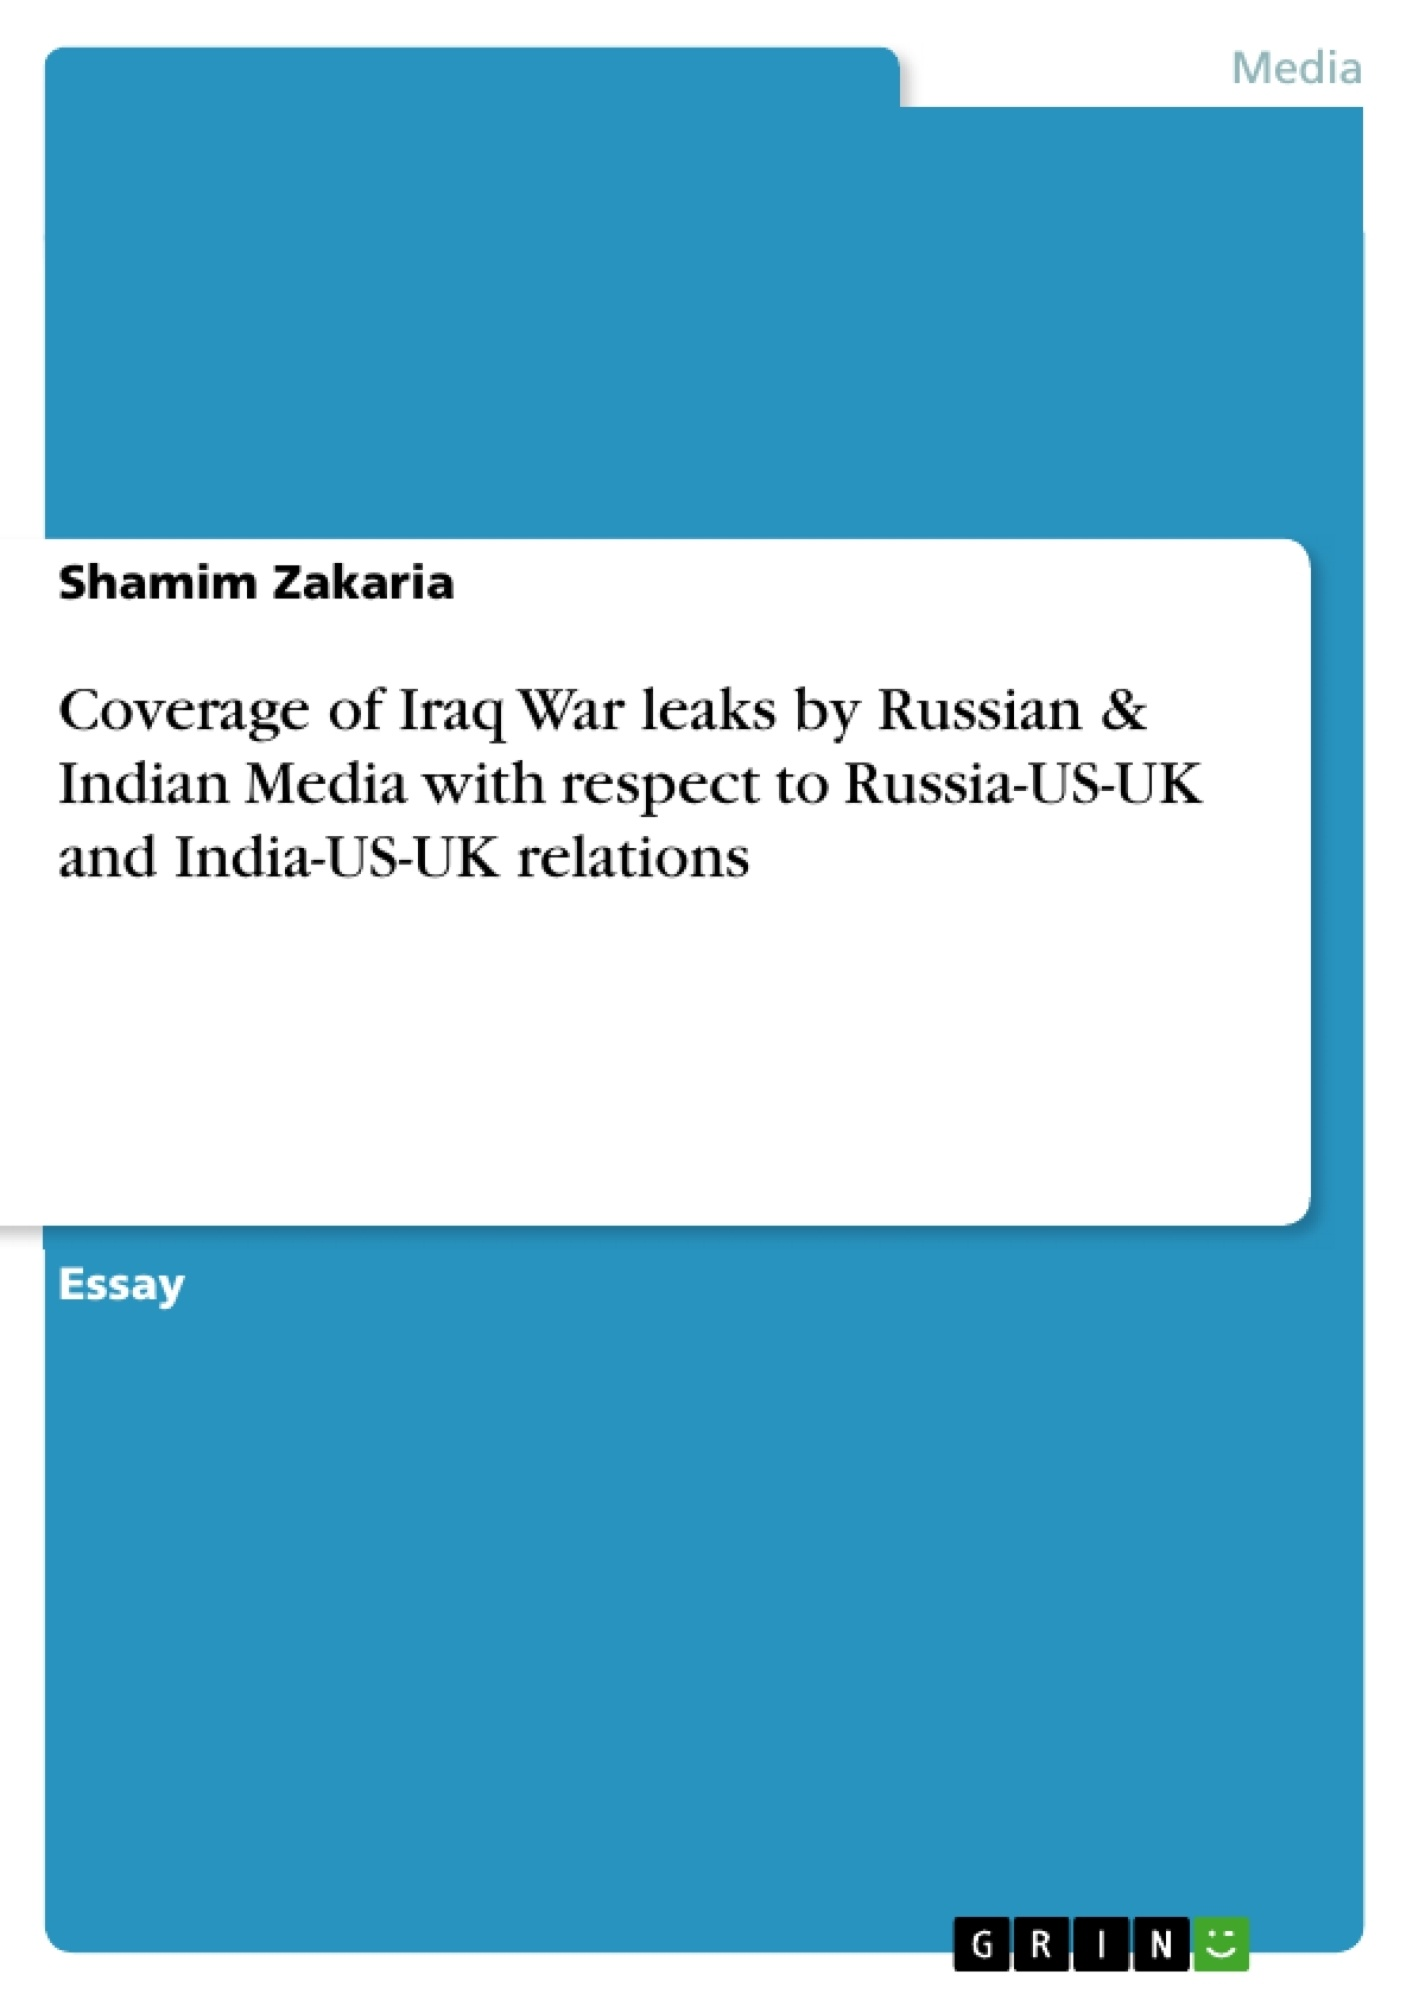 Title: Coverage of Iraq War leaks by Russian & Indian Media with respect to Russia-US-UK and India-US-UK relations